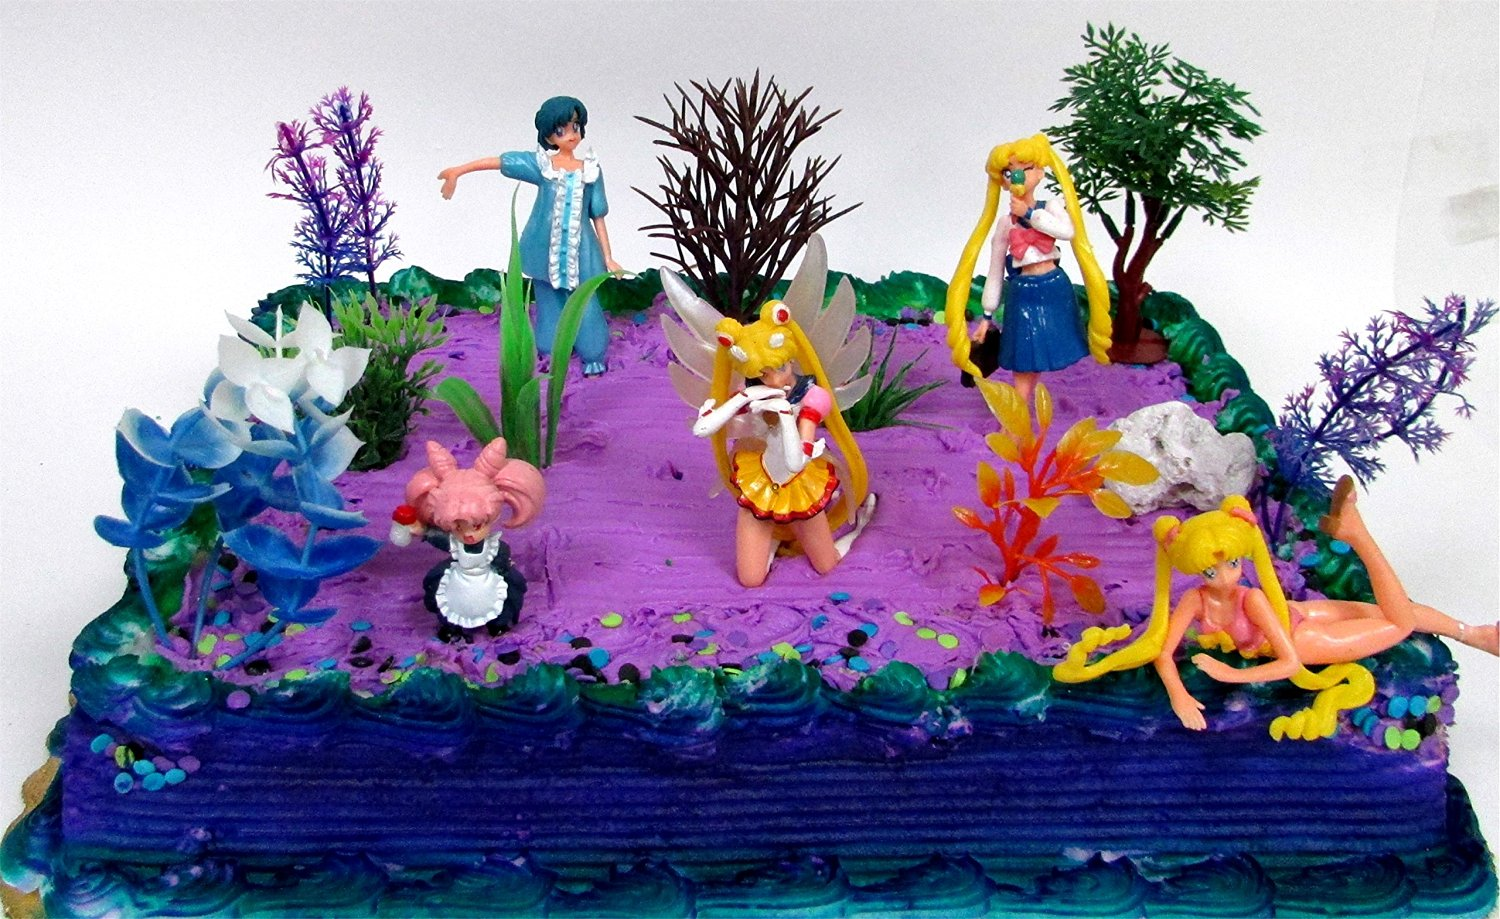 Buy 10 Piece Sailor Moon Themed Birthday Cake Topper Set Featuring